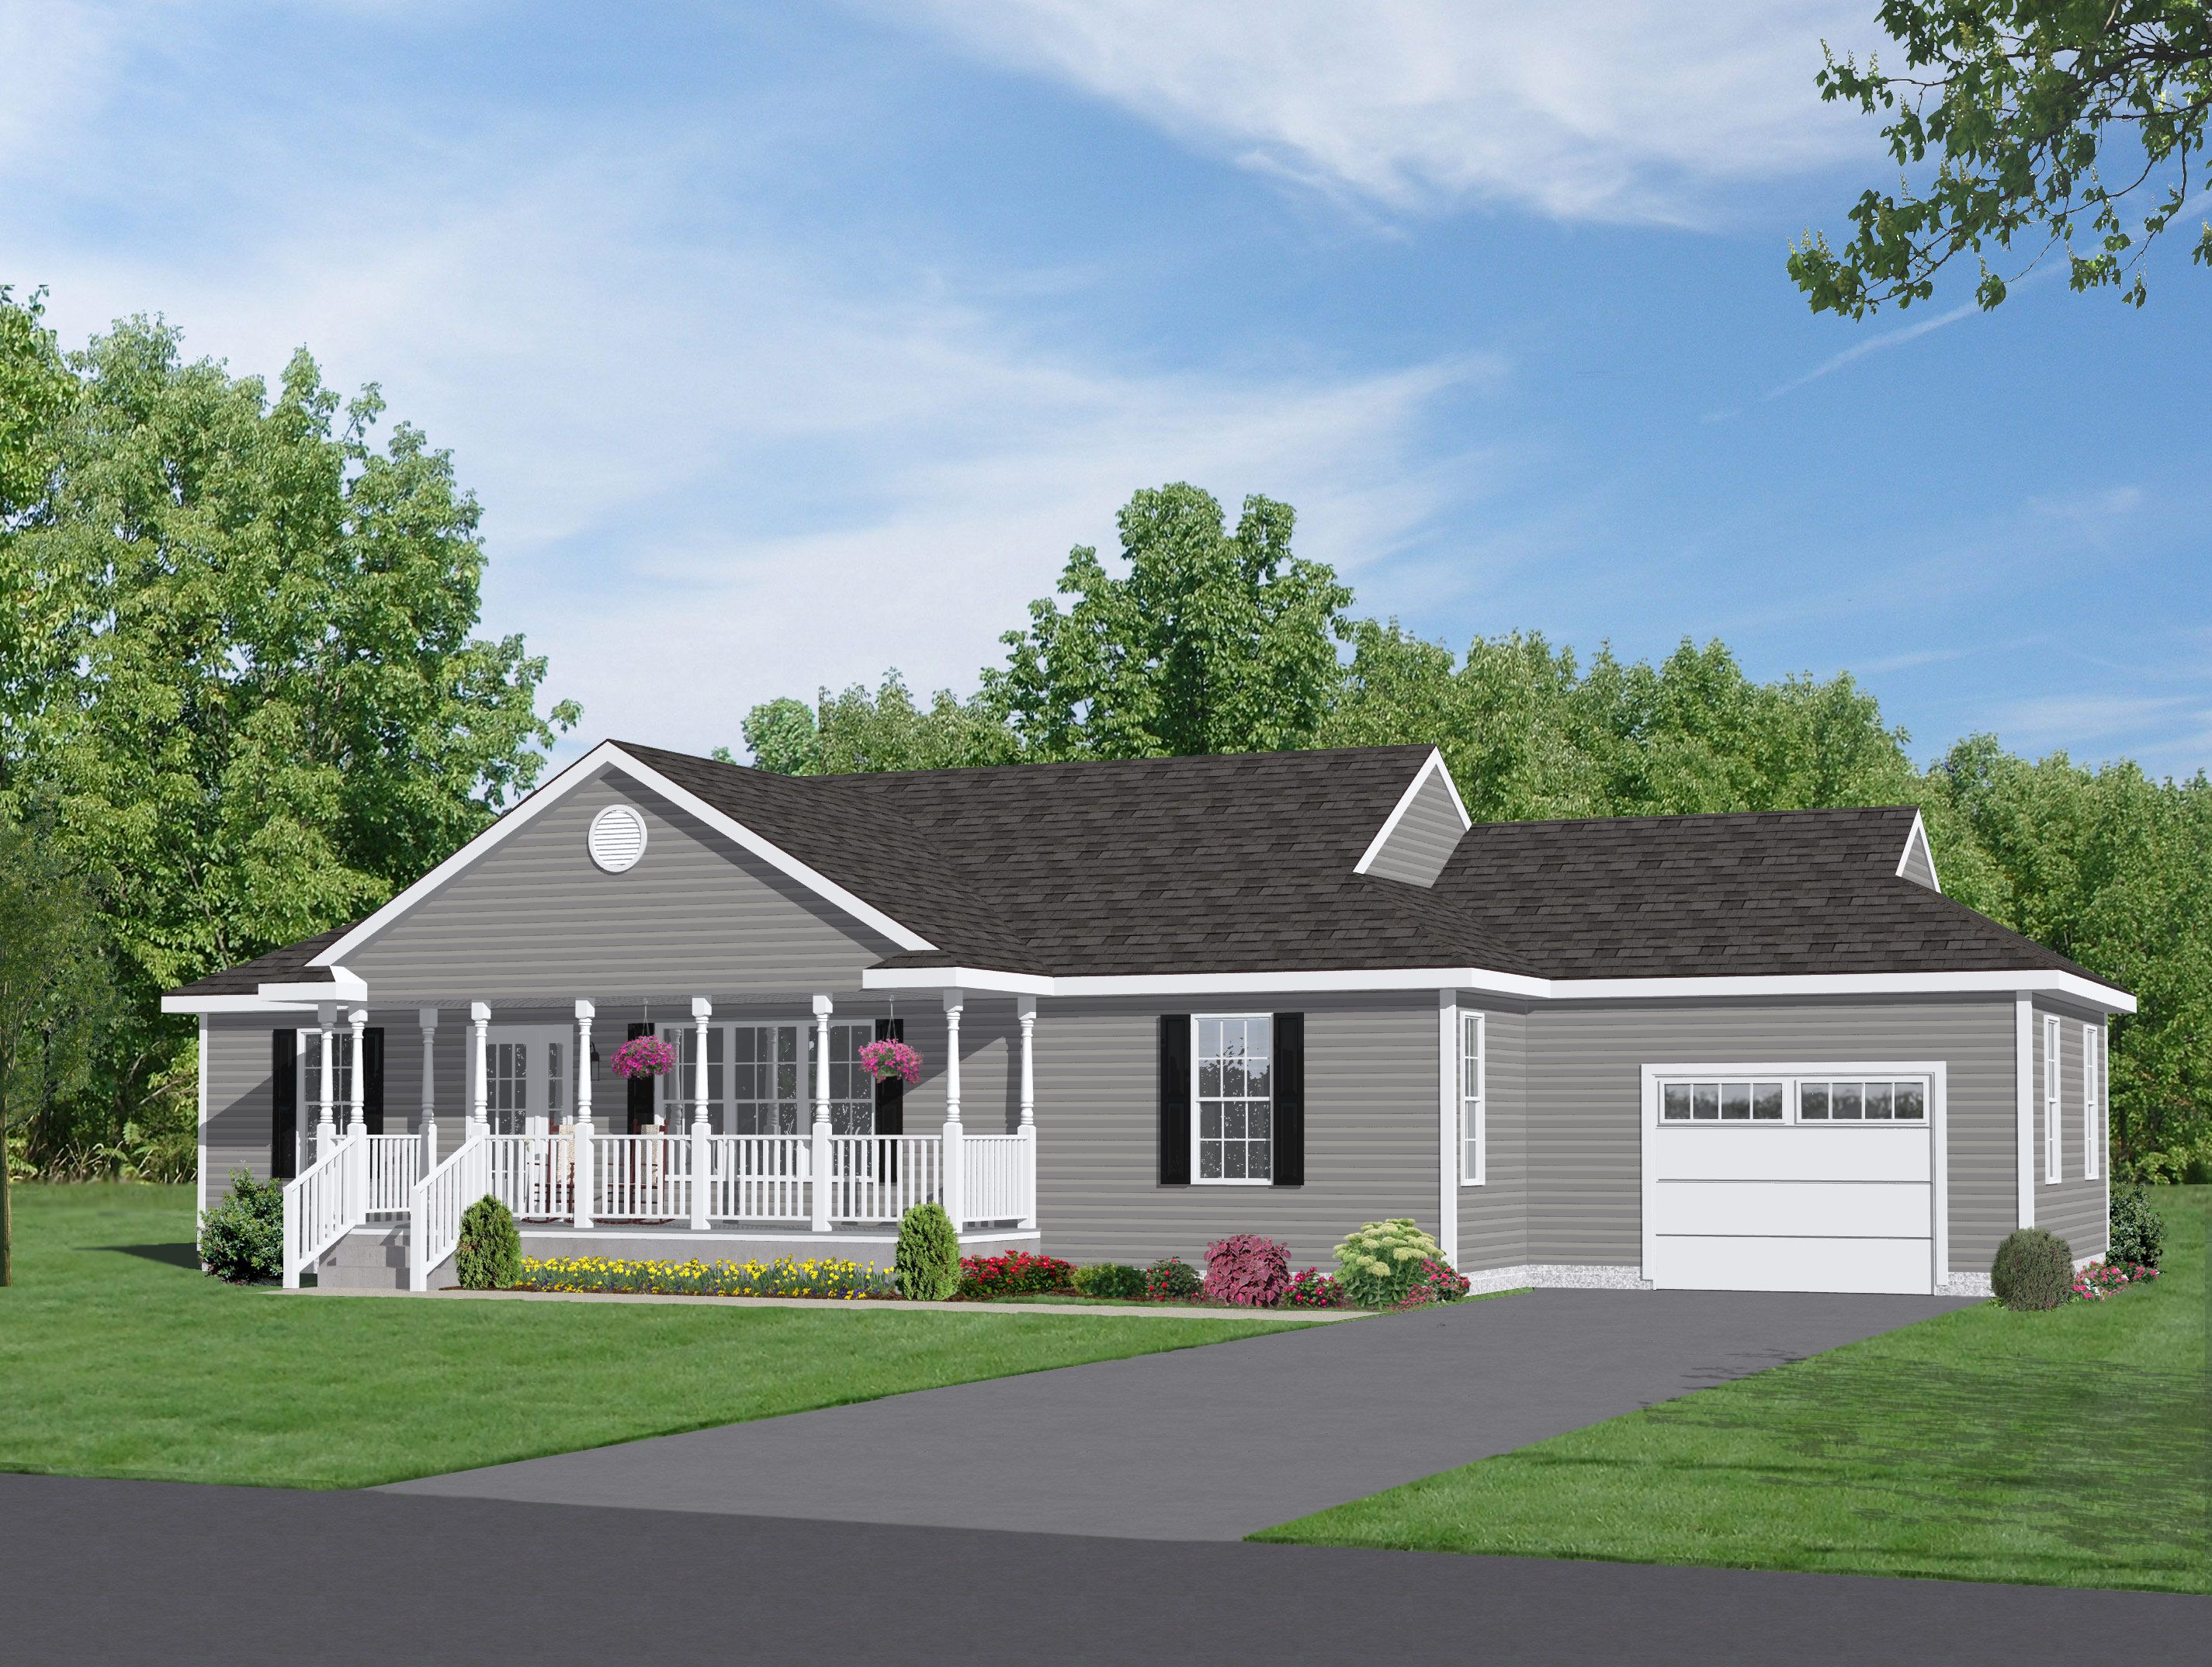 Rancher plans rancher plans two story house plans ranch for Country ranch house plans with basement